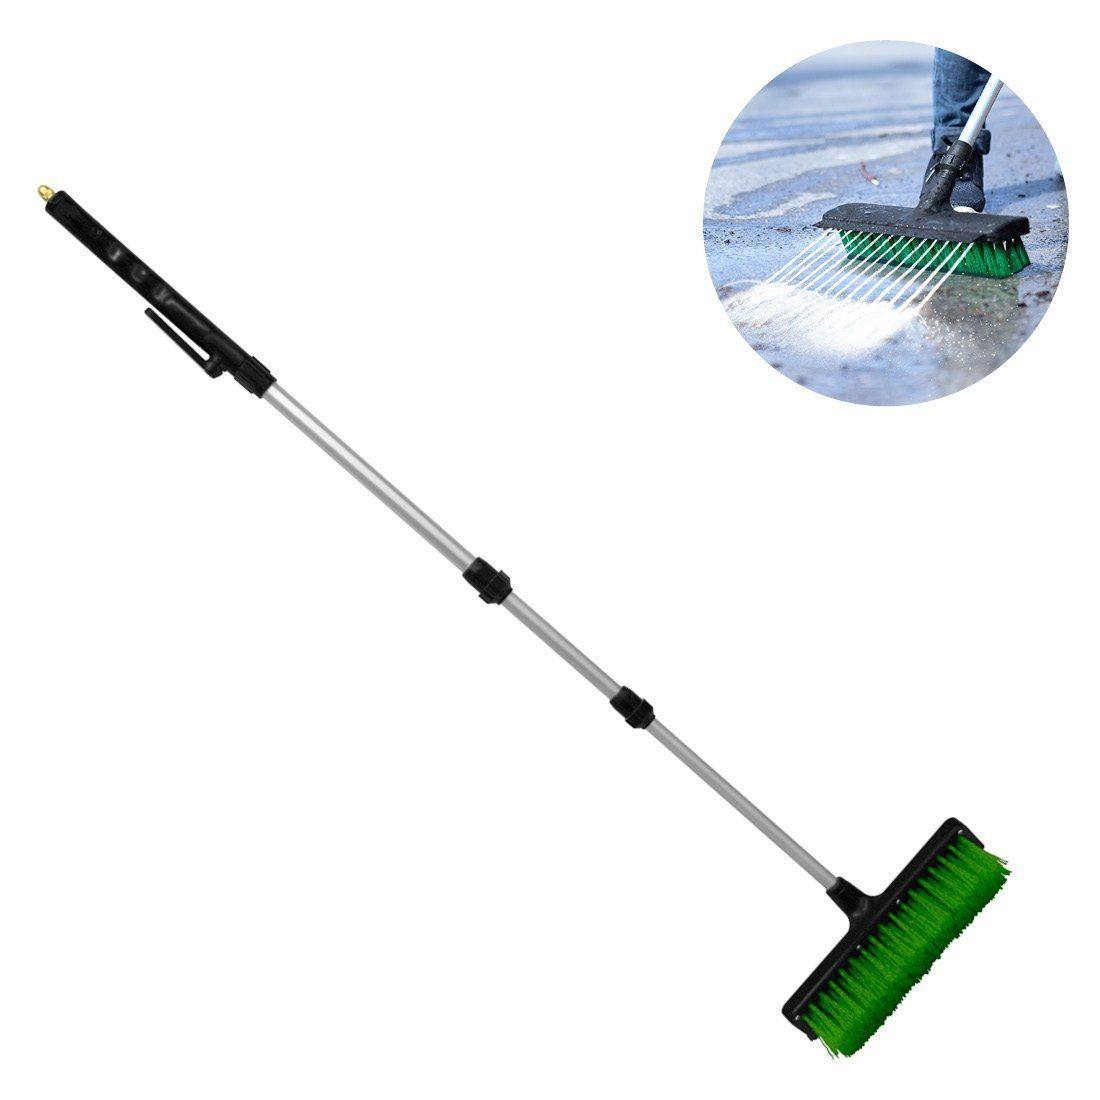 These water brooms can be attached to your garden hose and